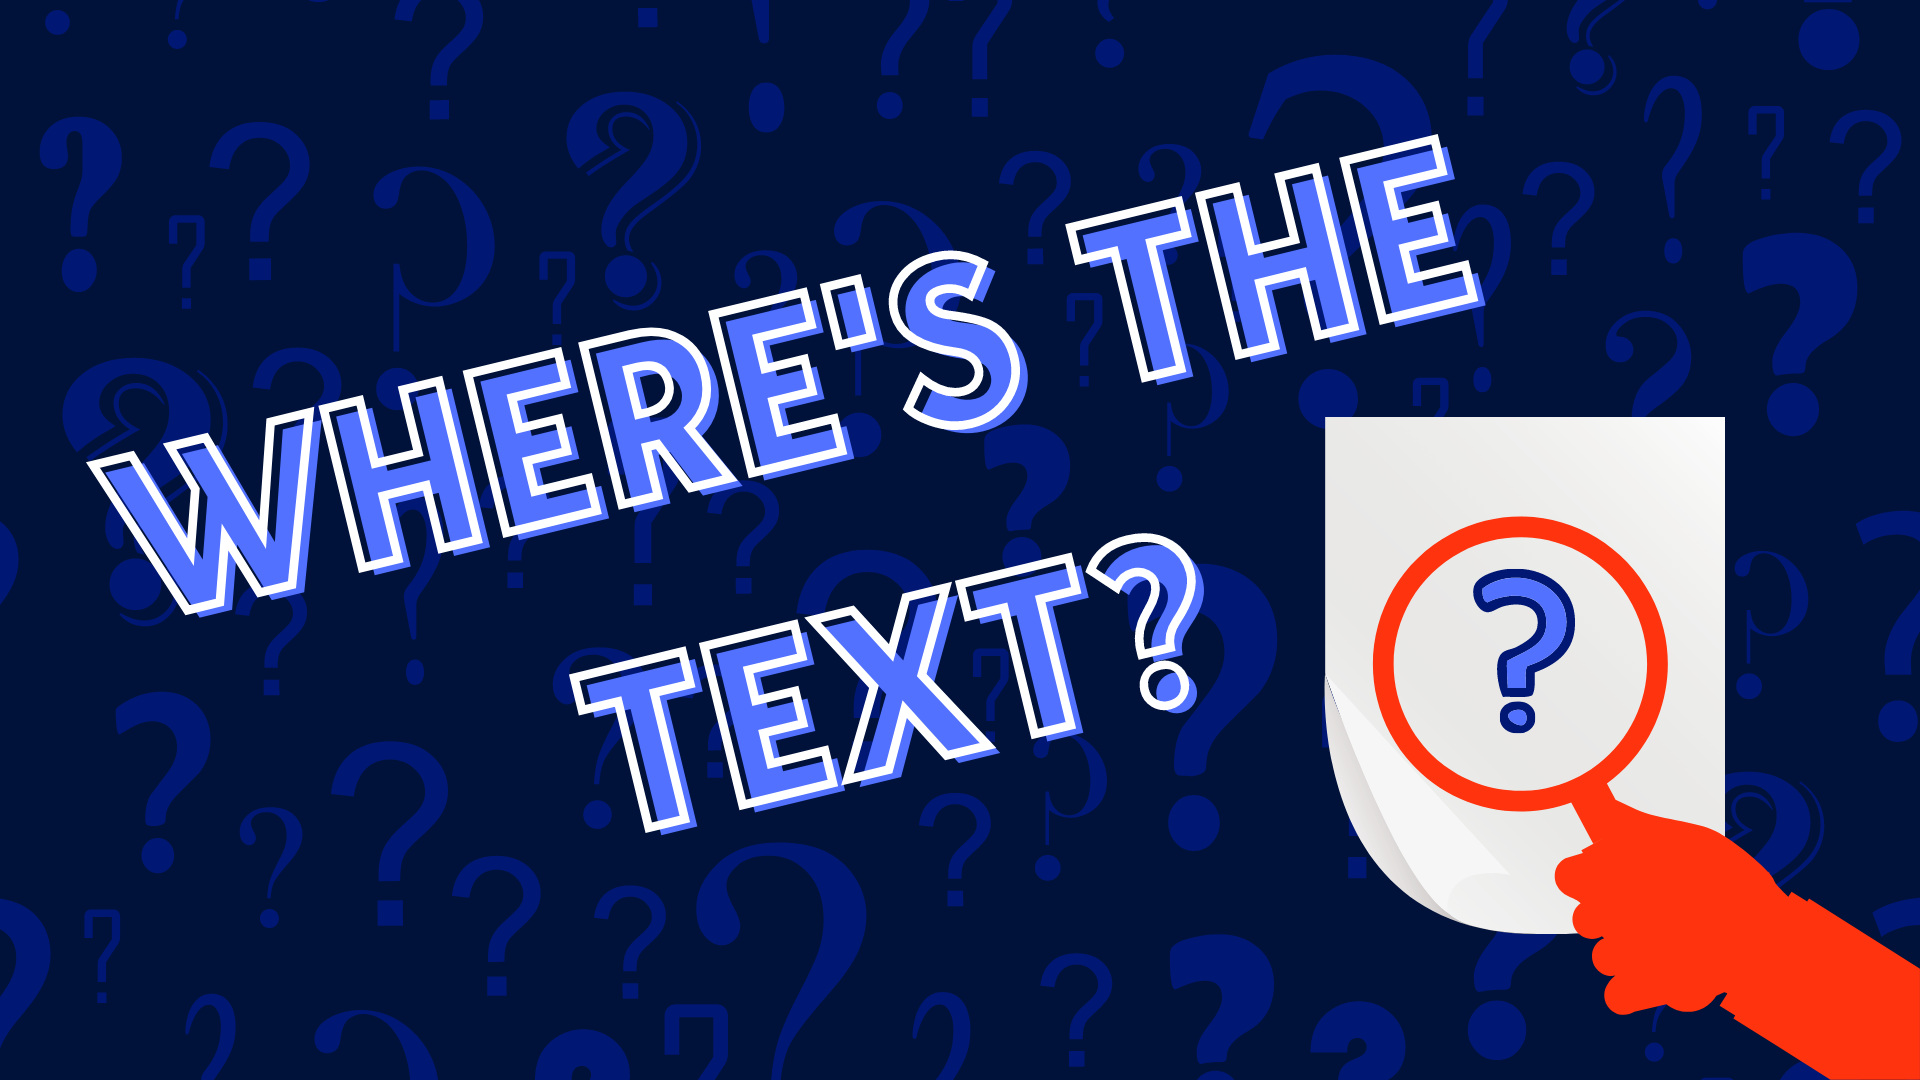 Text Where is the Text with an image of a magnifying glass looking at a document with a question mark on it